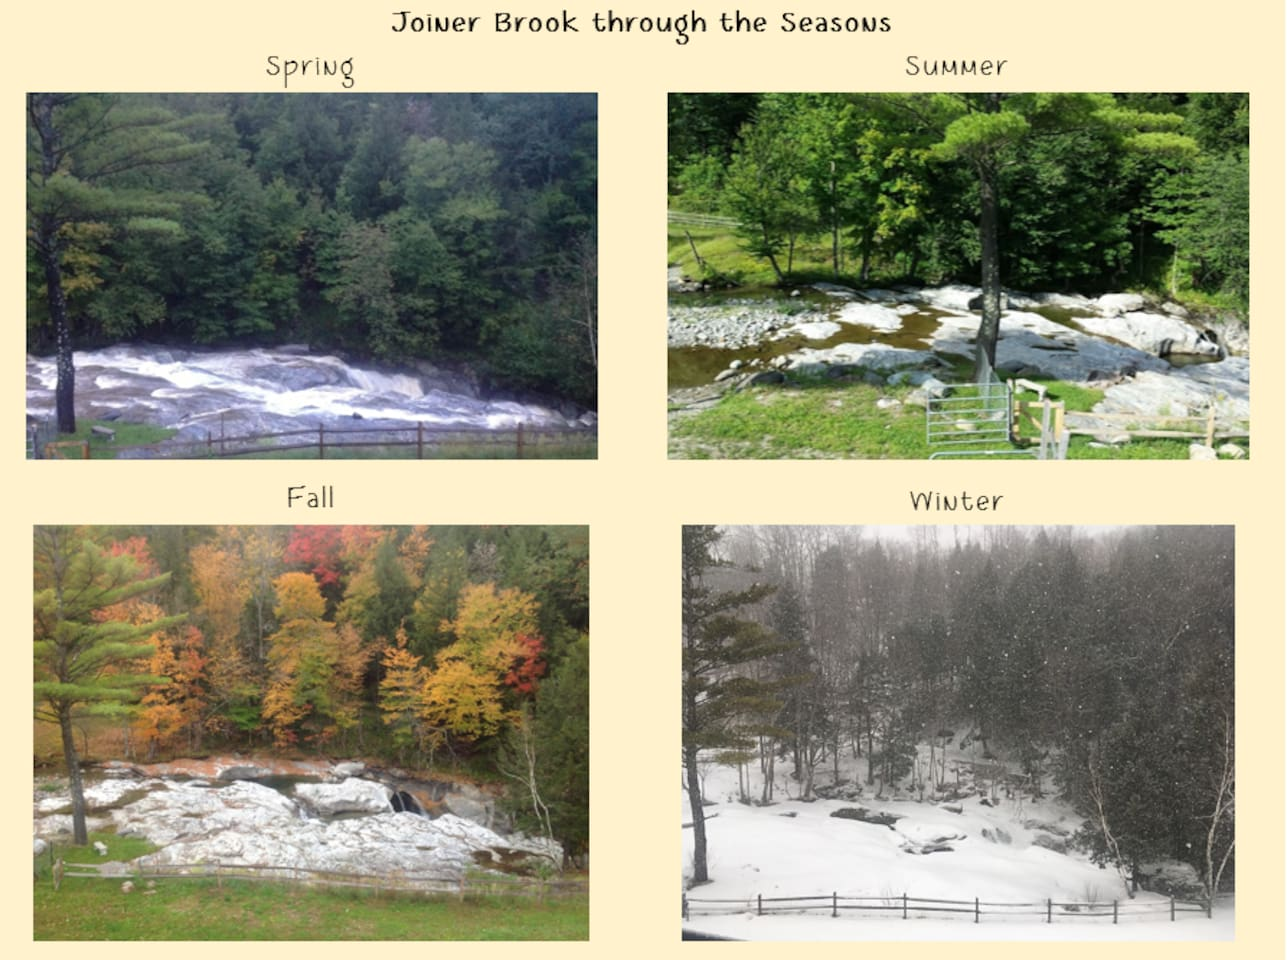 Seasonal view of the Joiner Brook from the Black Barn Farm